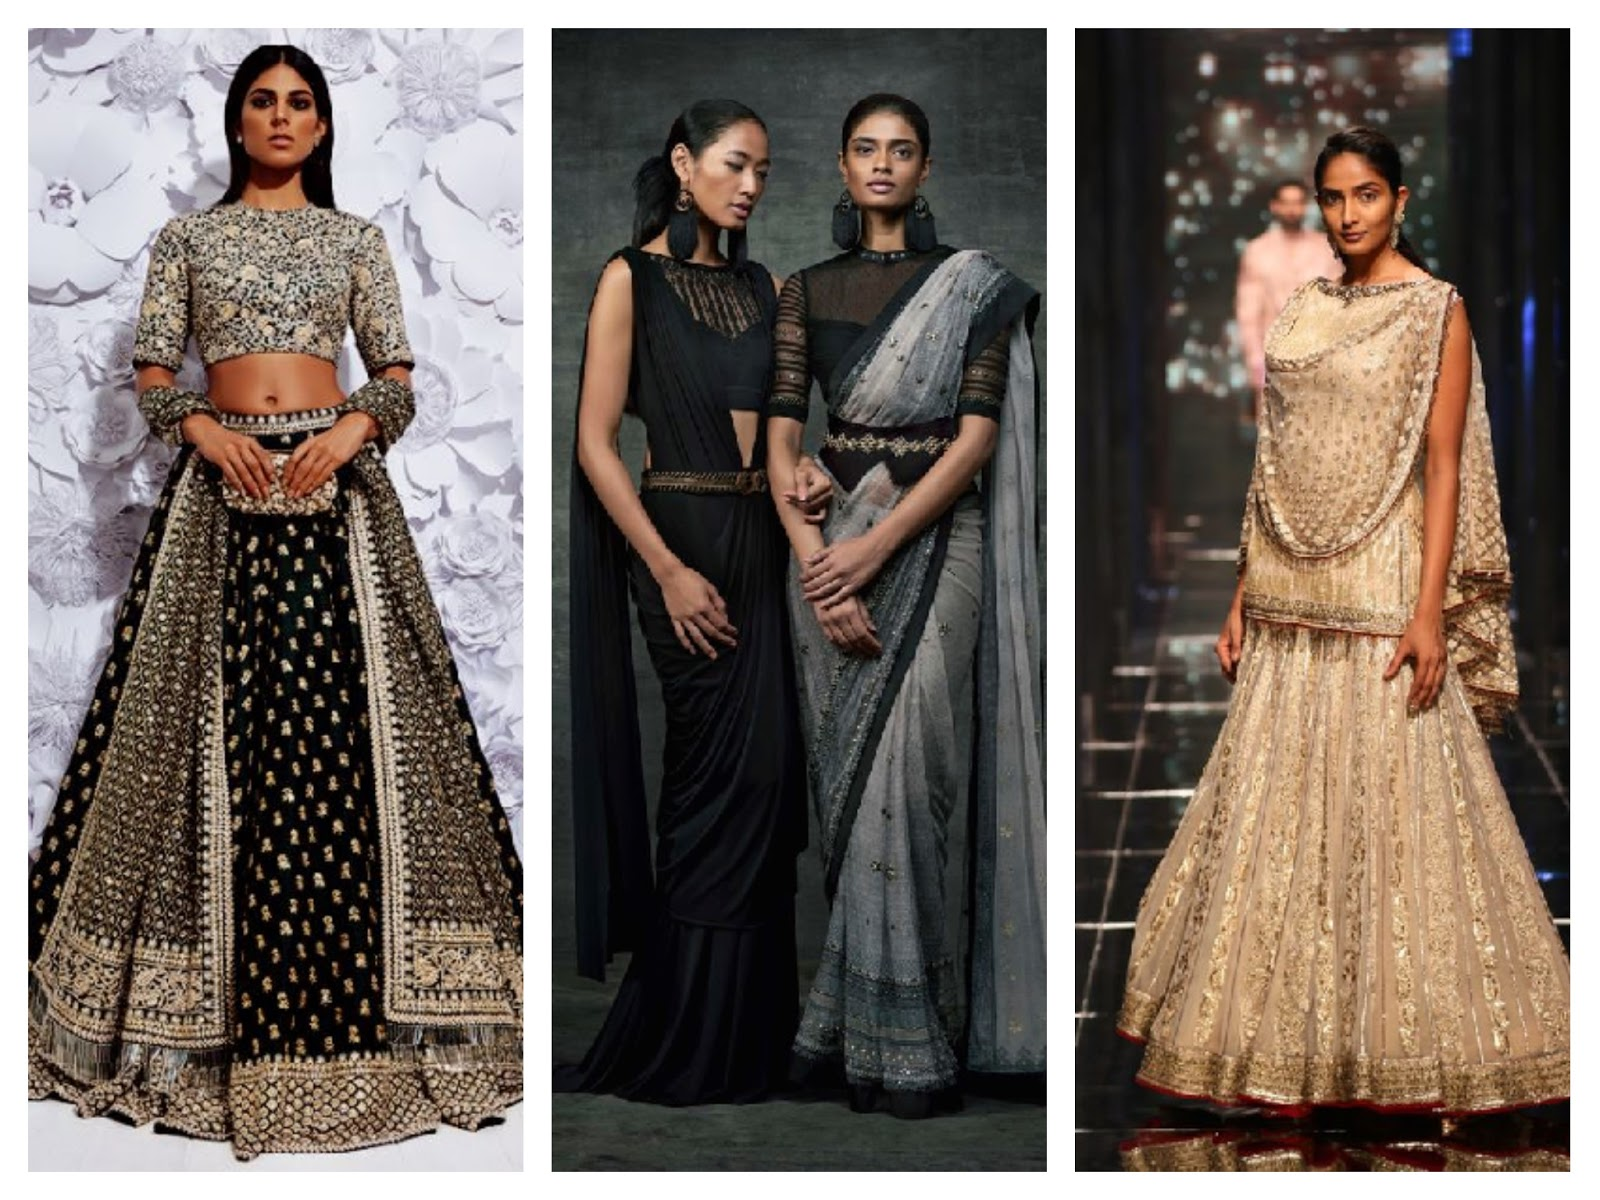 Top 20 Indian Ethnic Wear Brand Names List Of Top 10 Indian